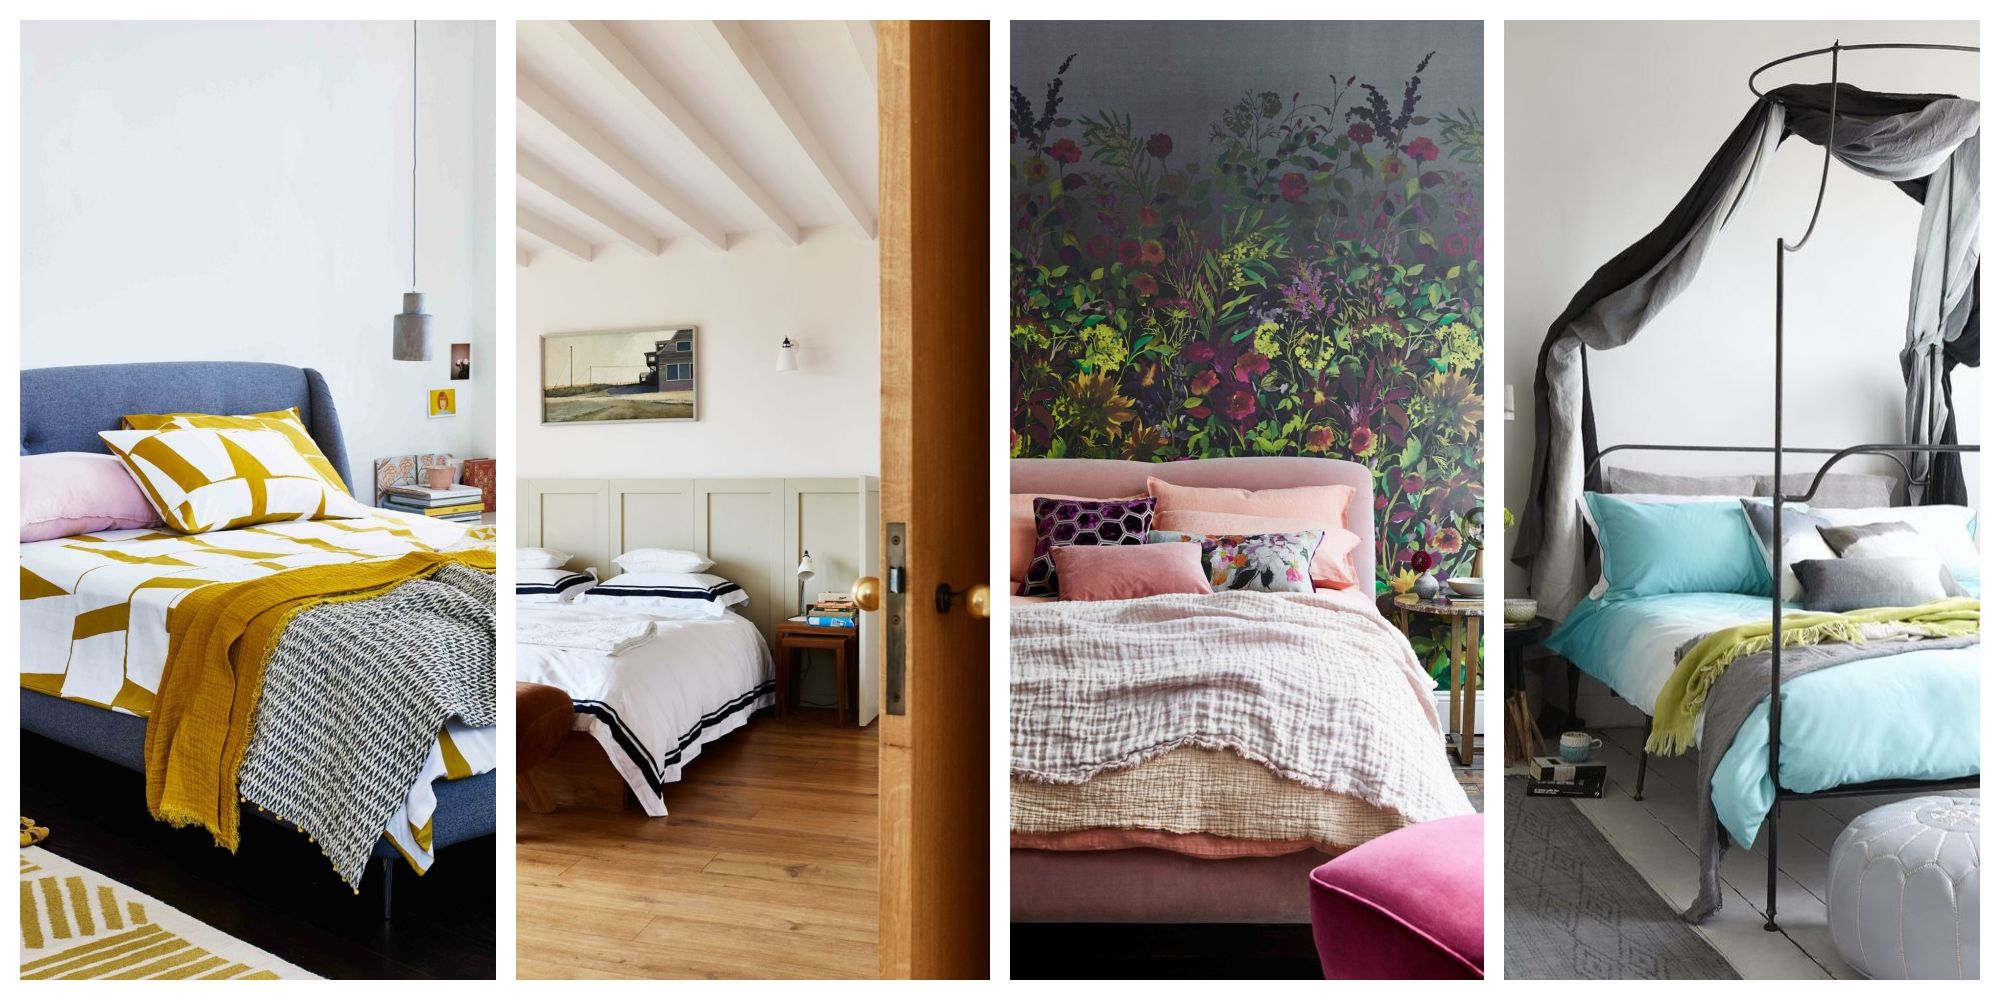 A wonderful collection of pictures of bedroom interiors